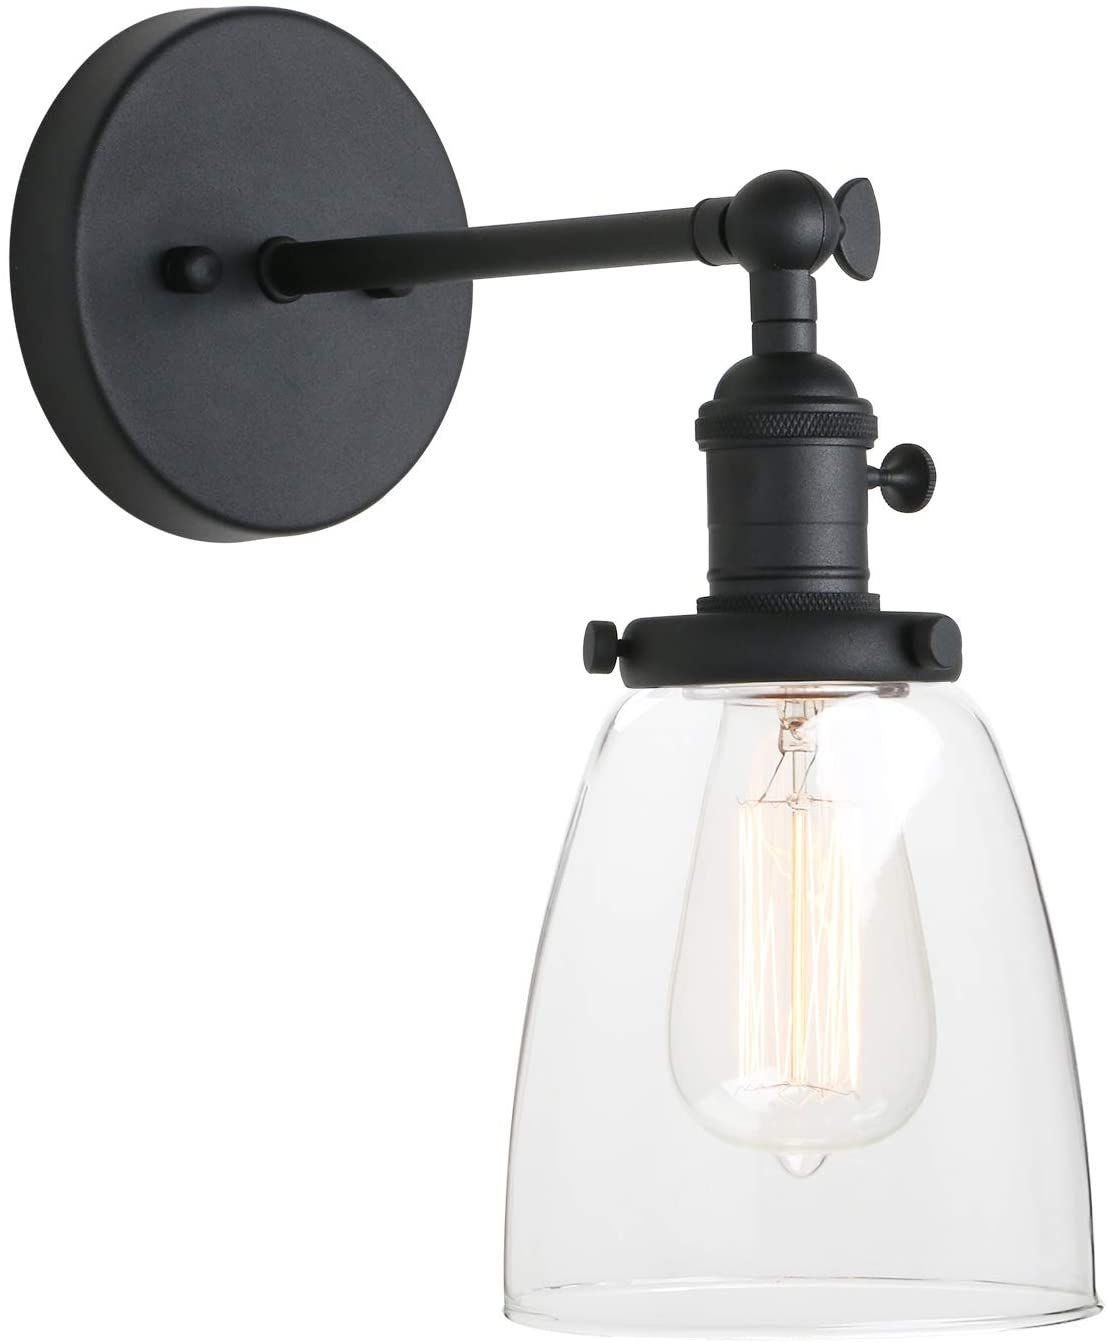 Pathson Vintage Wall Sconce With On Off Switch Clear Glass Shade Black Vanity Light Indoor Wall Li In 2020 Vintage Wall Sconces Black Vanity Light Brass Vanity Light